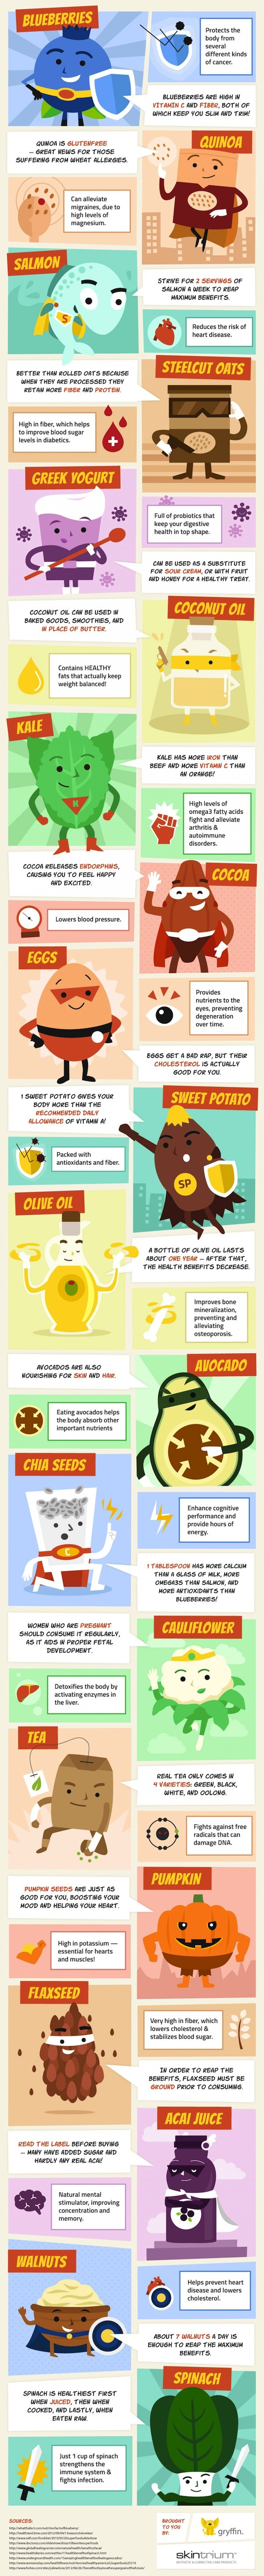 20 Healthiest Superfoods Infographic